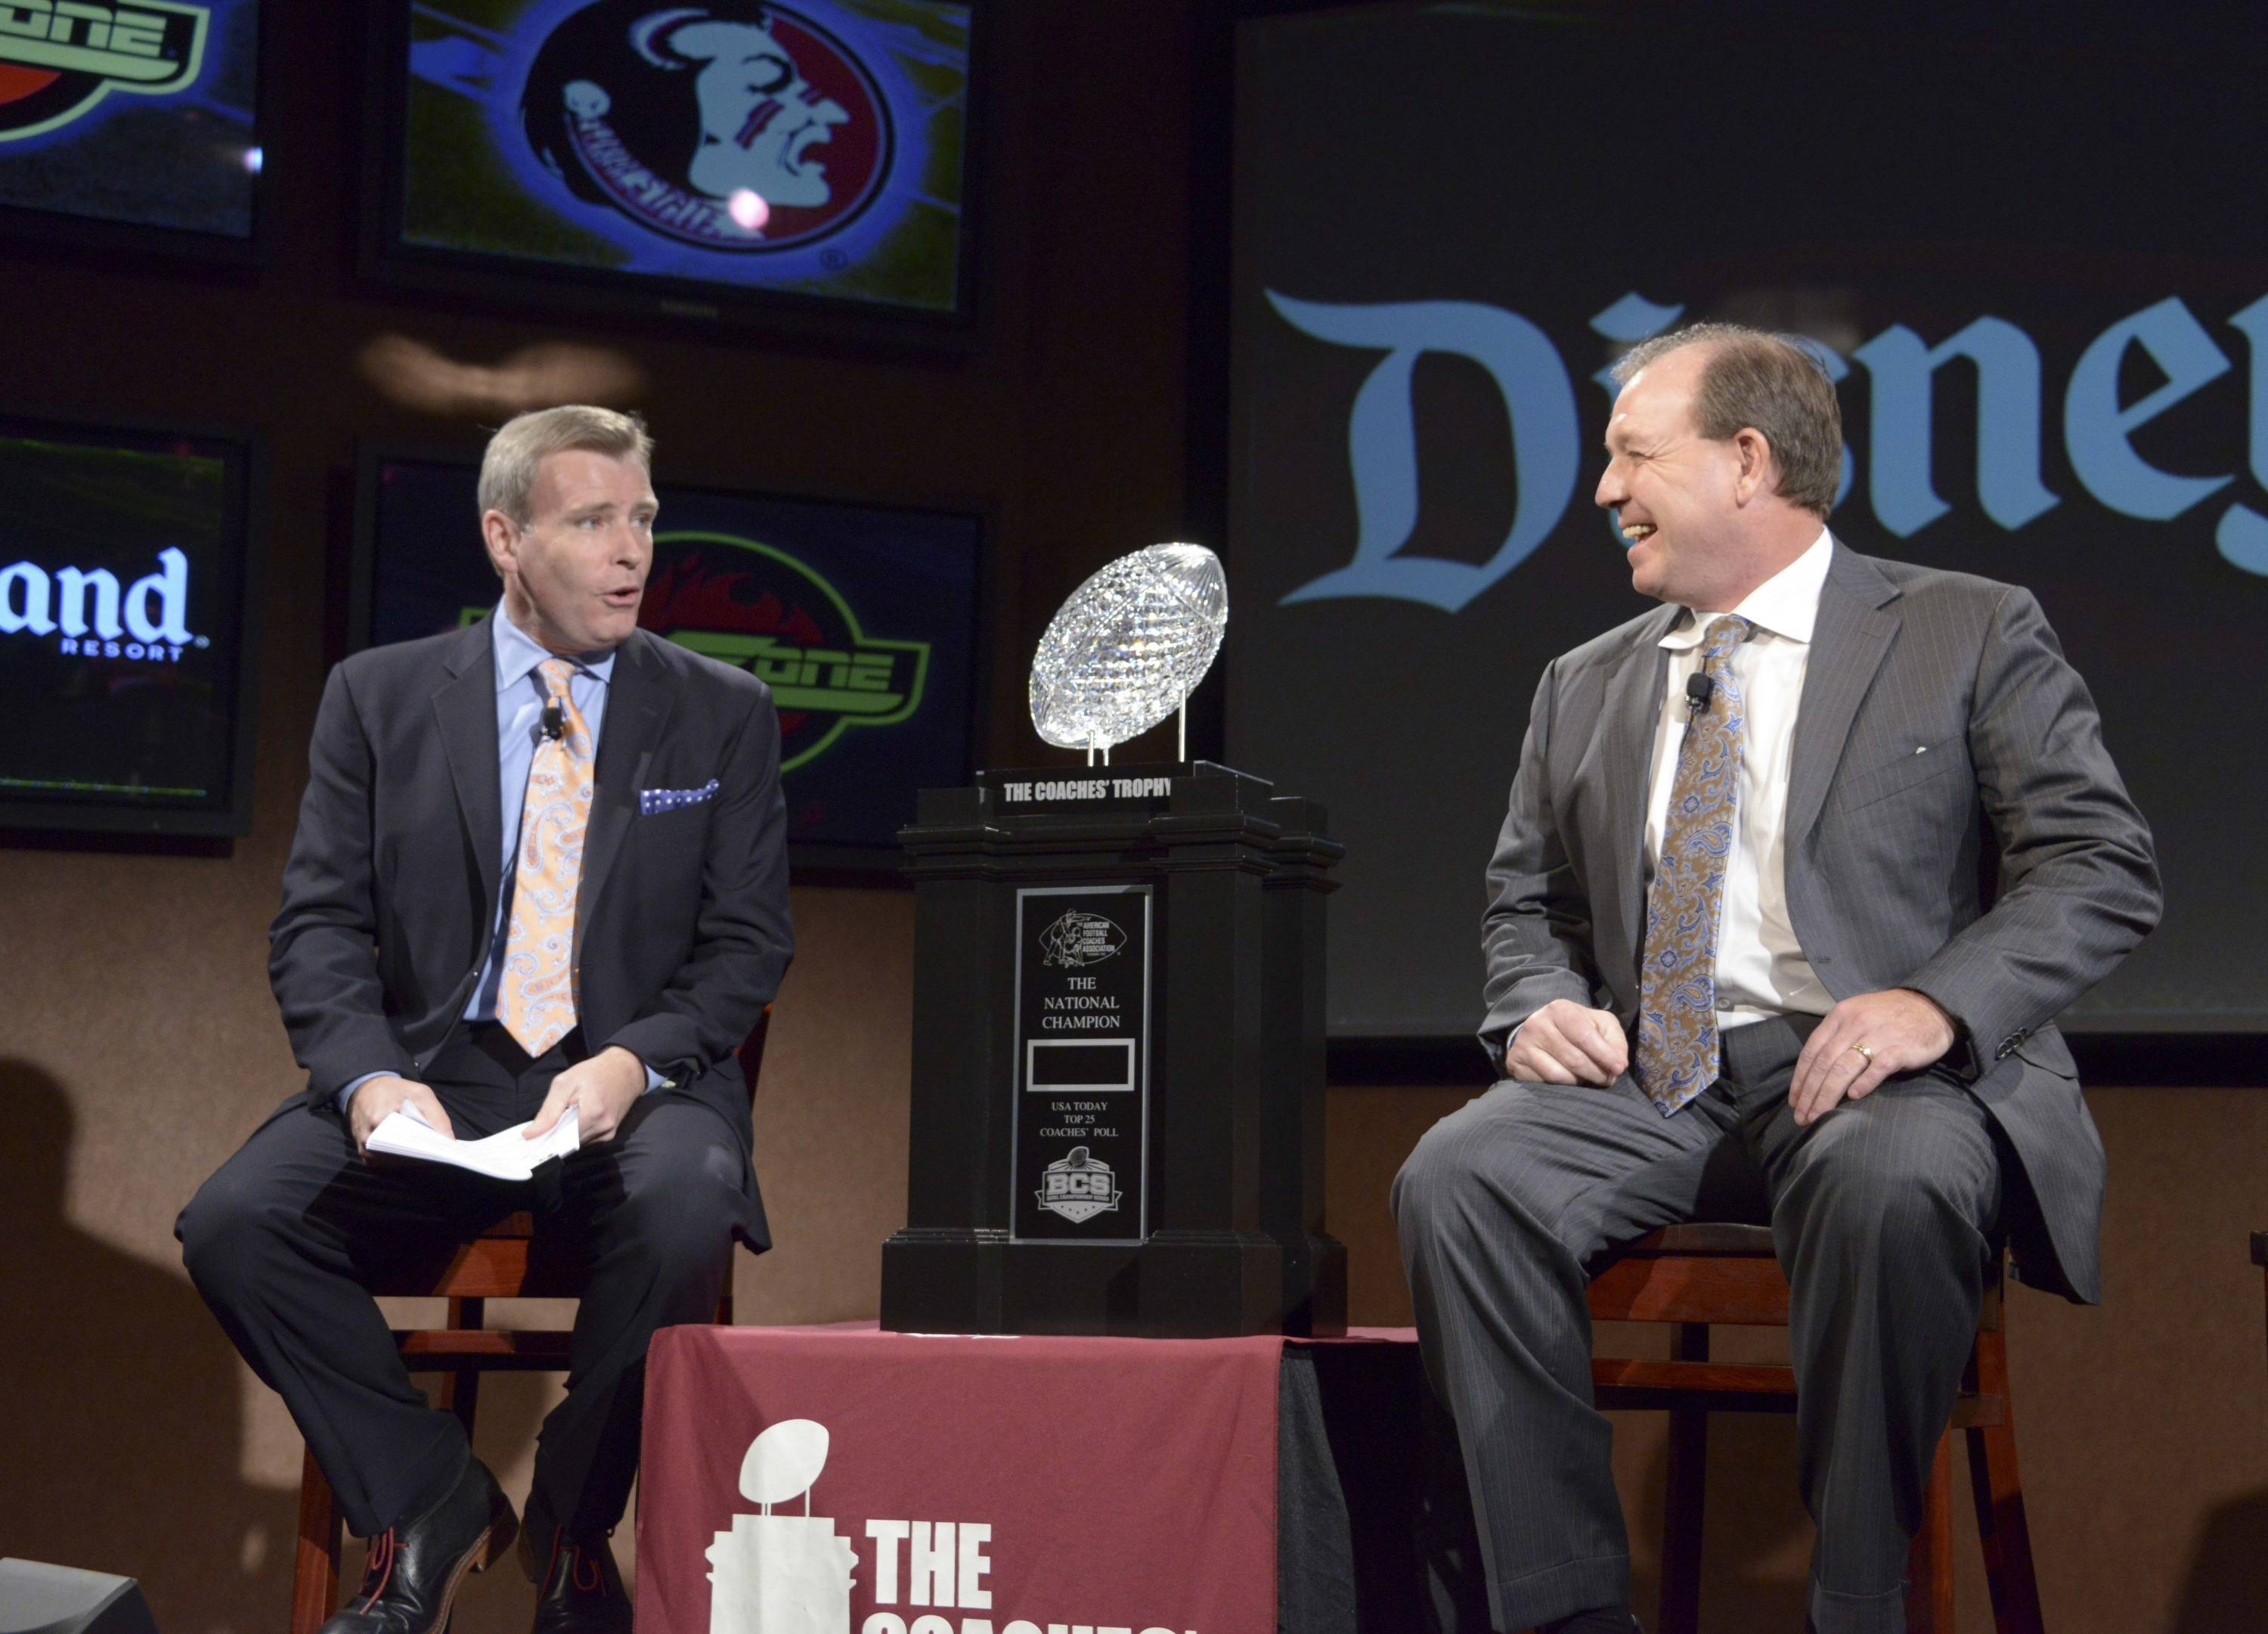 ESPN broadcaster Tom Rinaldi (left) interviews Florida State Seminoles coach Jimbo Fisher at a press conference for the 2014 BCS National Championship at ESPN Zone Downtown Disney. Mandatory Credit: Kirby Lee-USA TODAY Sports